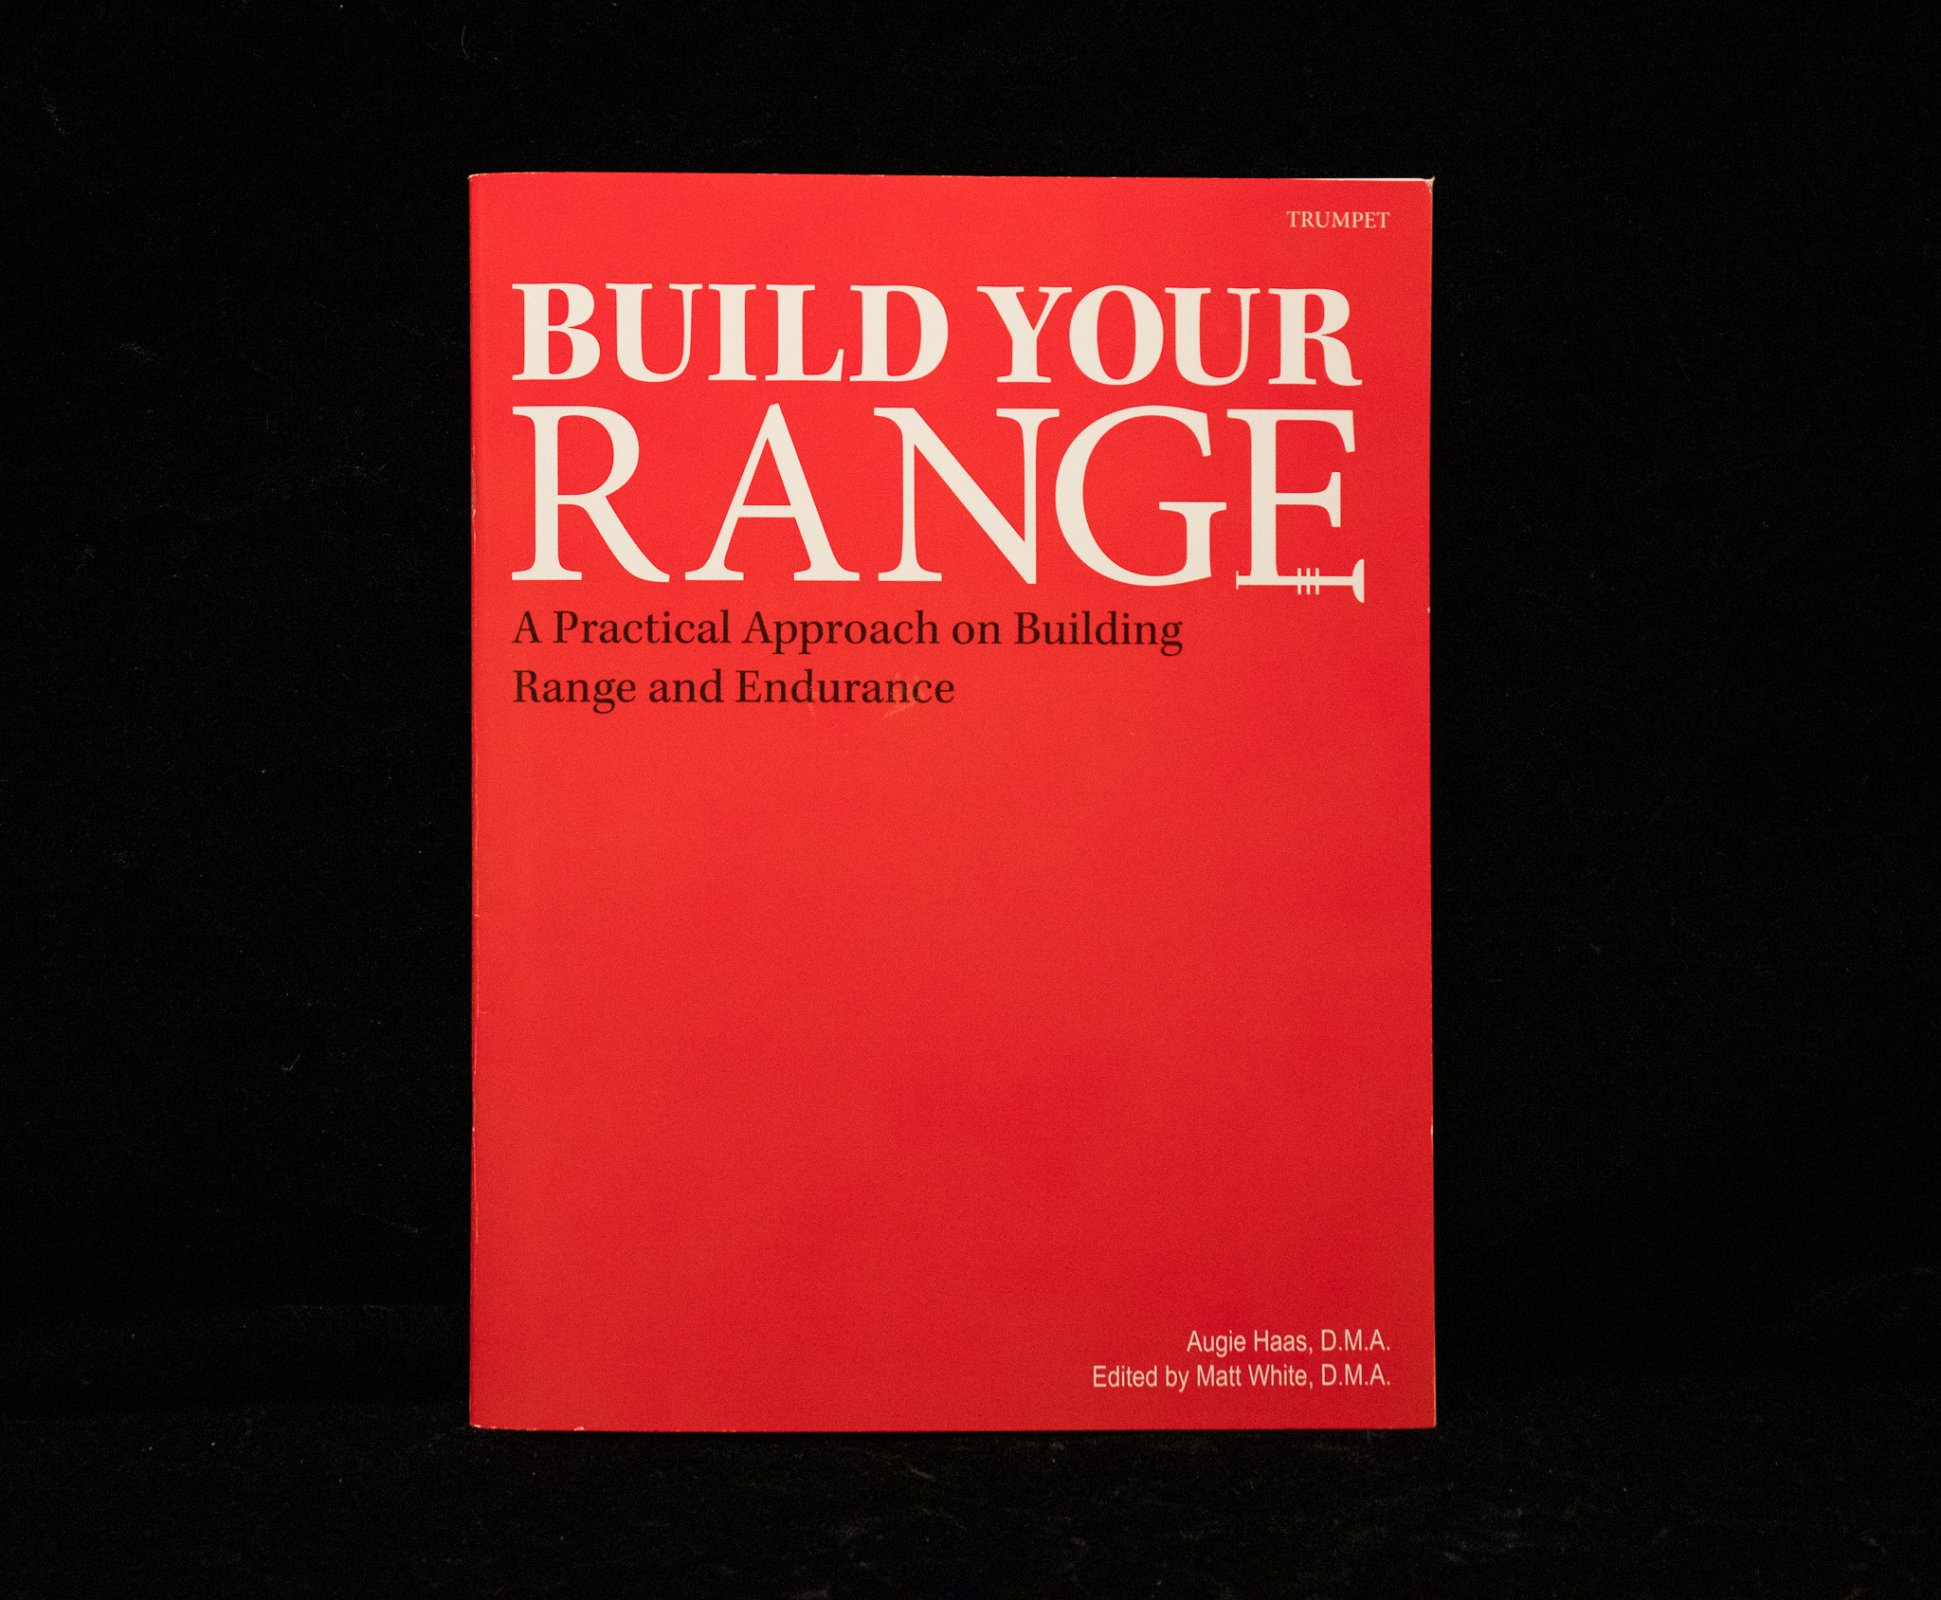 Build Your Range by Augie Haas